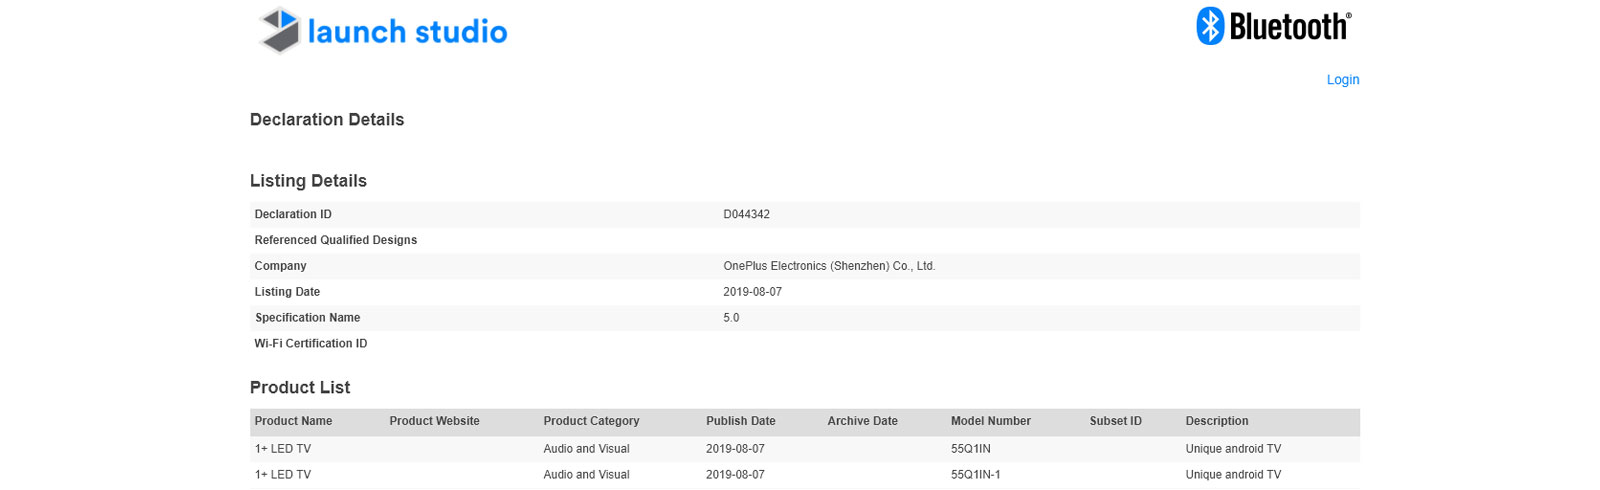 OnePlus LED TVs receive Bluetooth certification